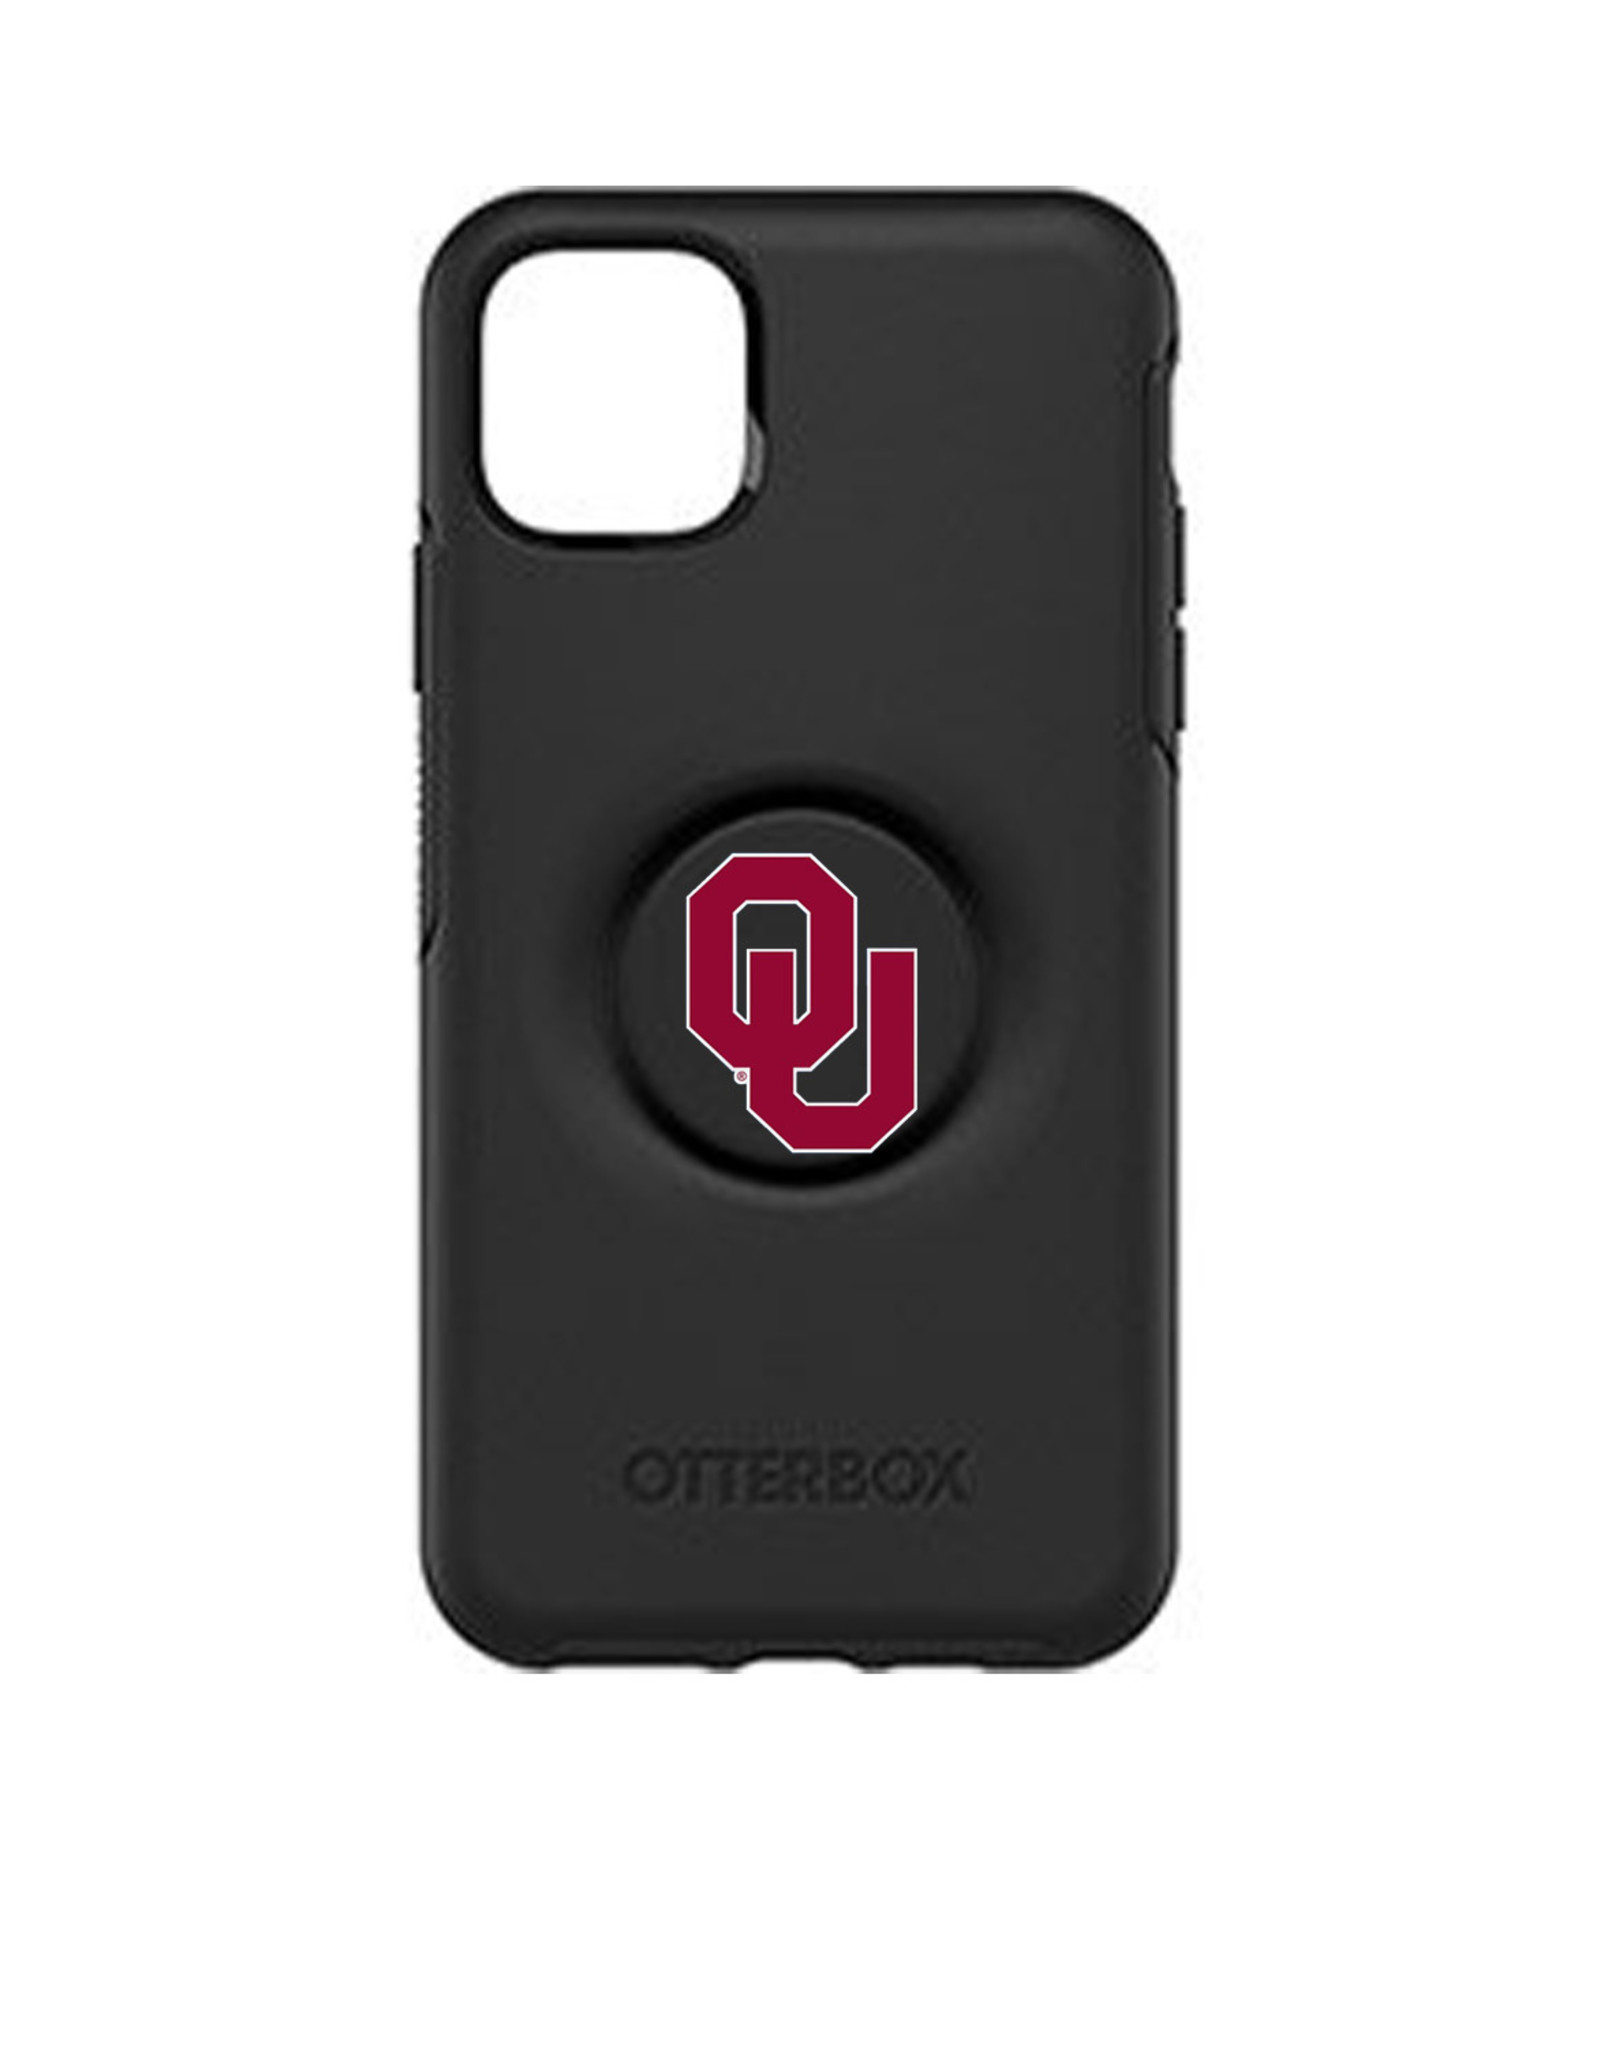 Otter Box Otter Box Otter+Pop OU iPhone 11 Pro Max Case